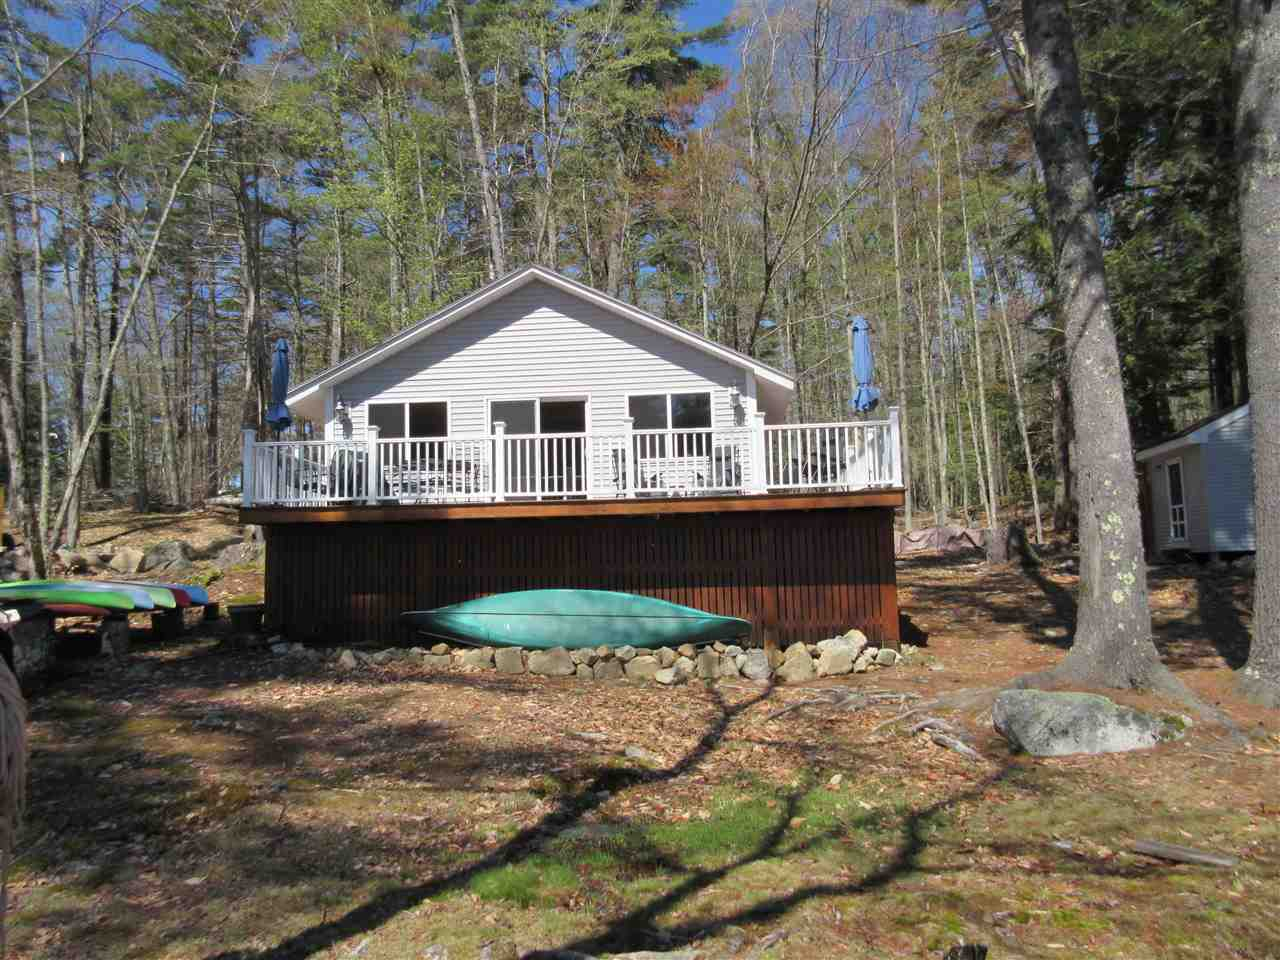 MLS 4754219: 76 Cow Island, Tuftonboro NH